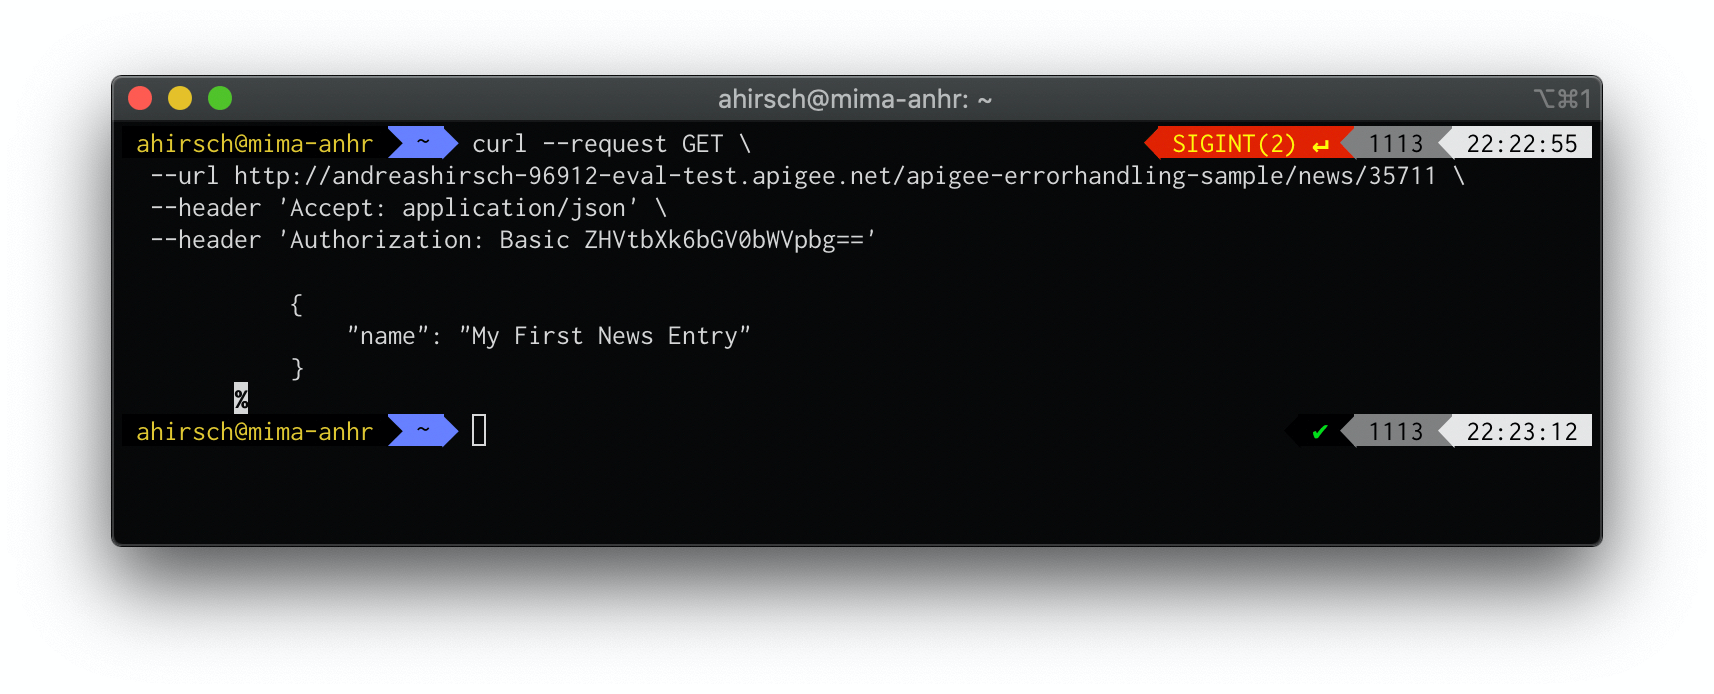 Using cURL to Send a Request to a REST API